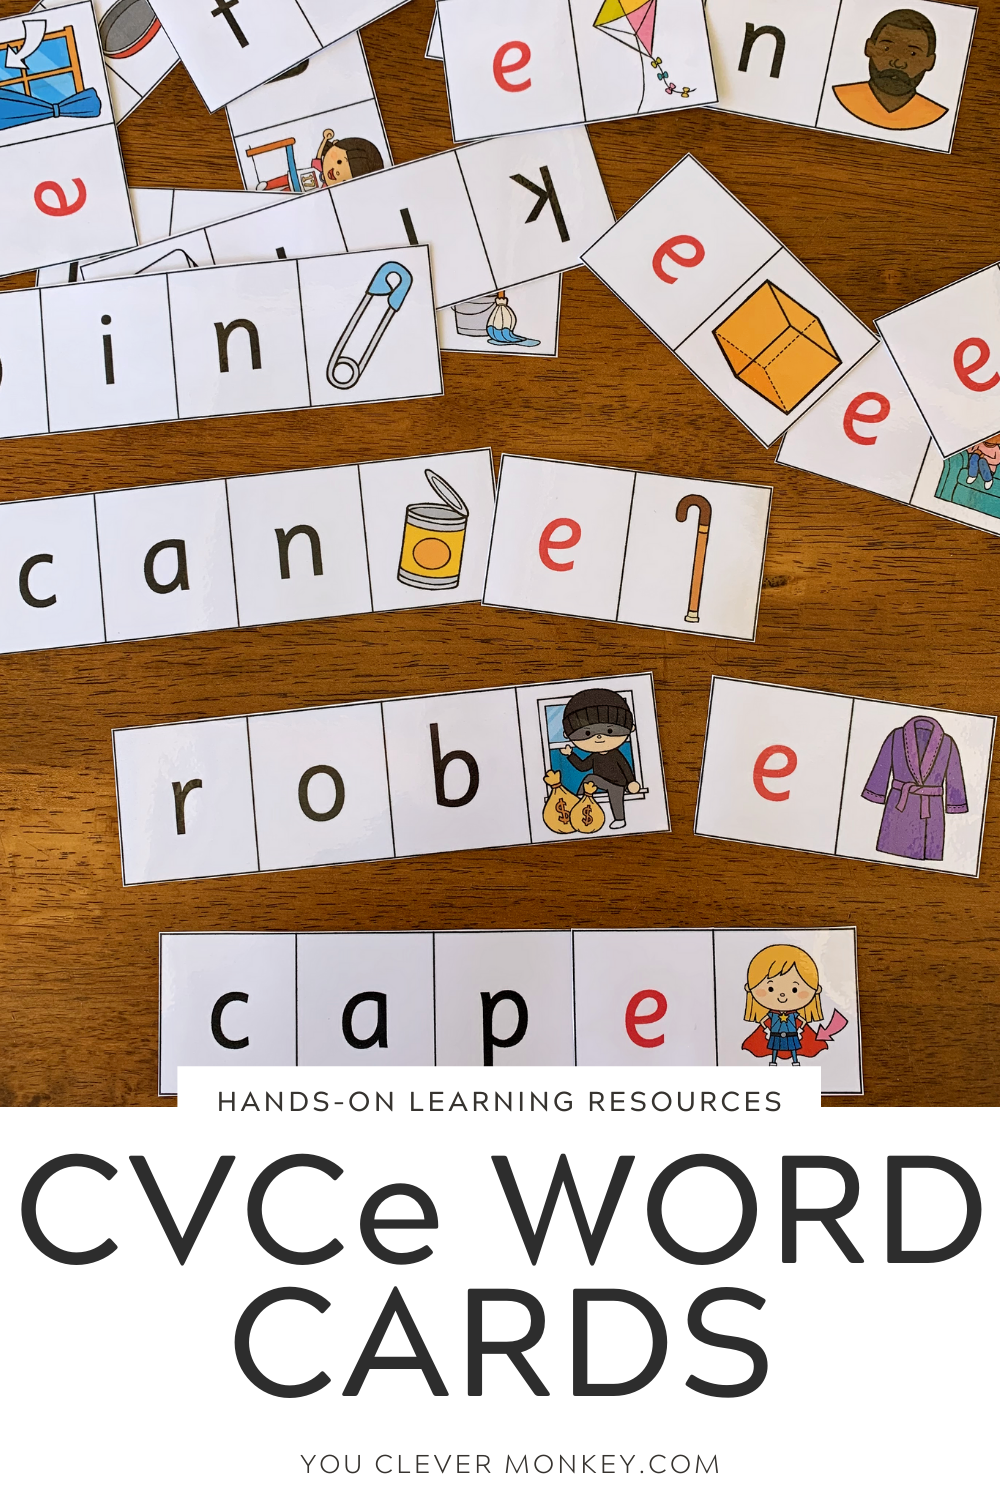 CVC to CVCe Word Cards - Learning the different vowel sounds can be challenging for many young learners. These CVC to CVCe Word cards provide helpful visual support for children struggling with the change in vowel sounds from short to long to create CVCe words from CVC words. Answer cards and recording sheets have been included to allow children to work independently | you clever monkey